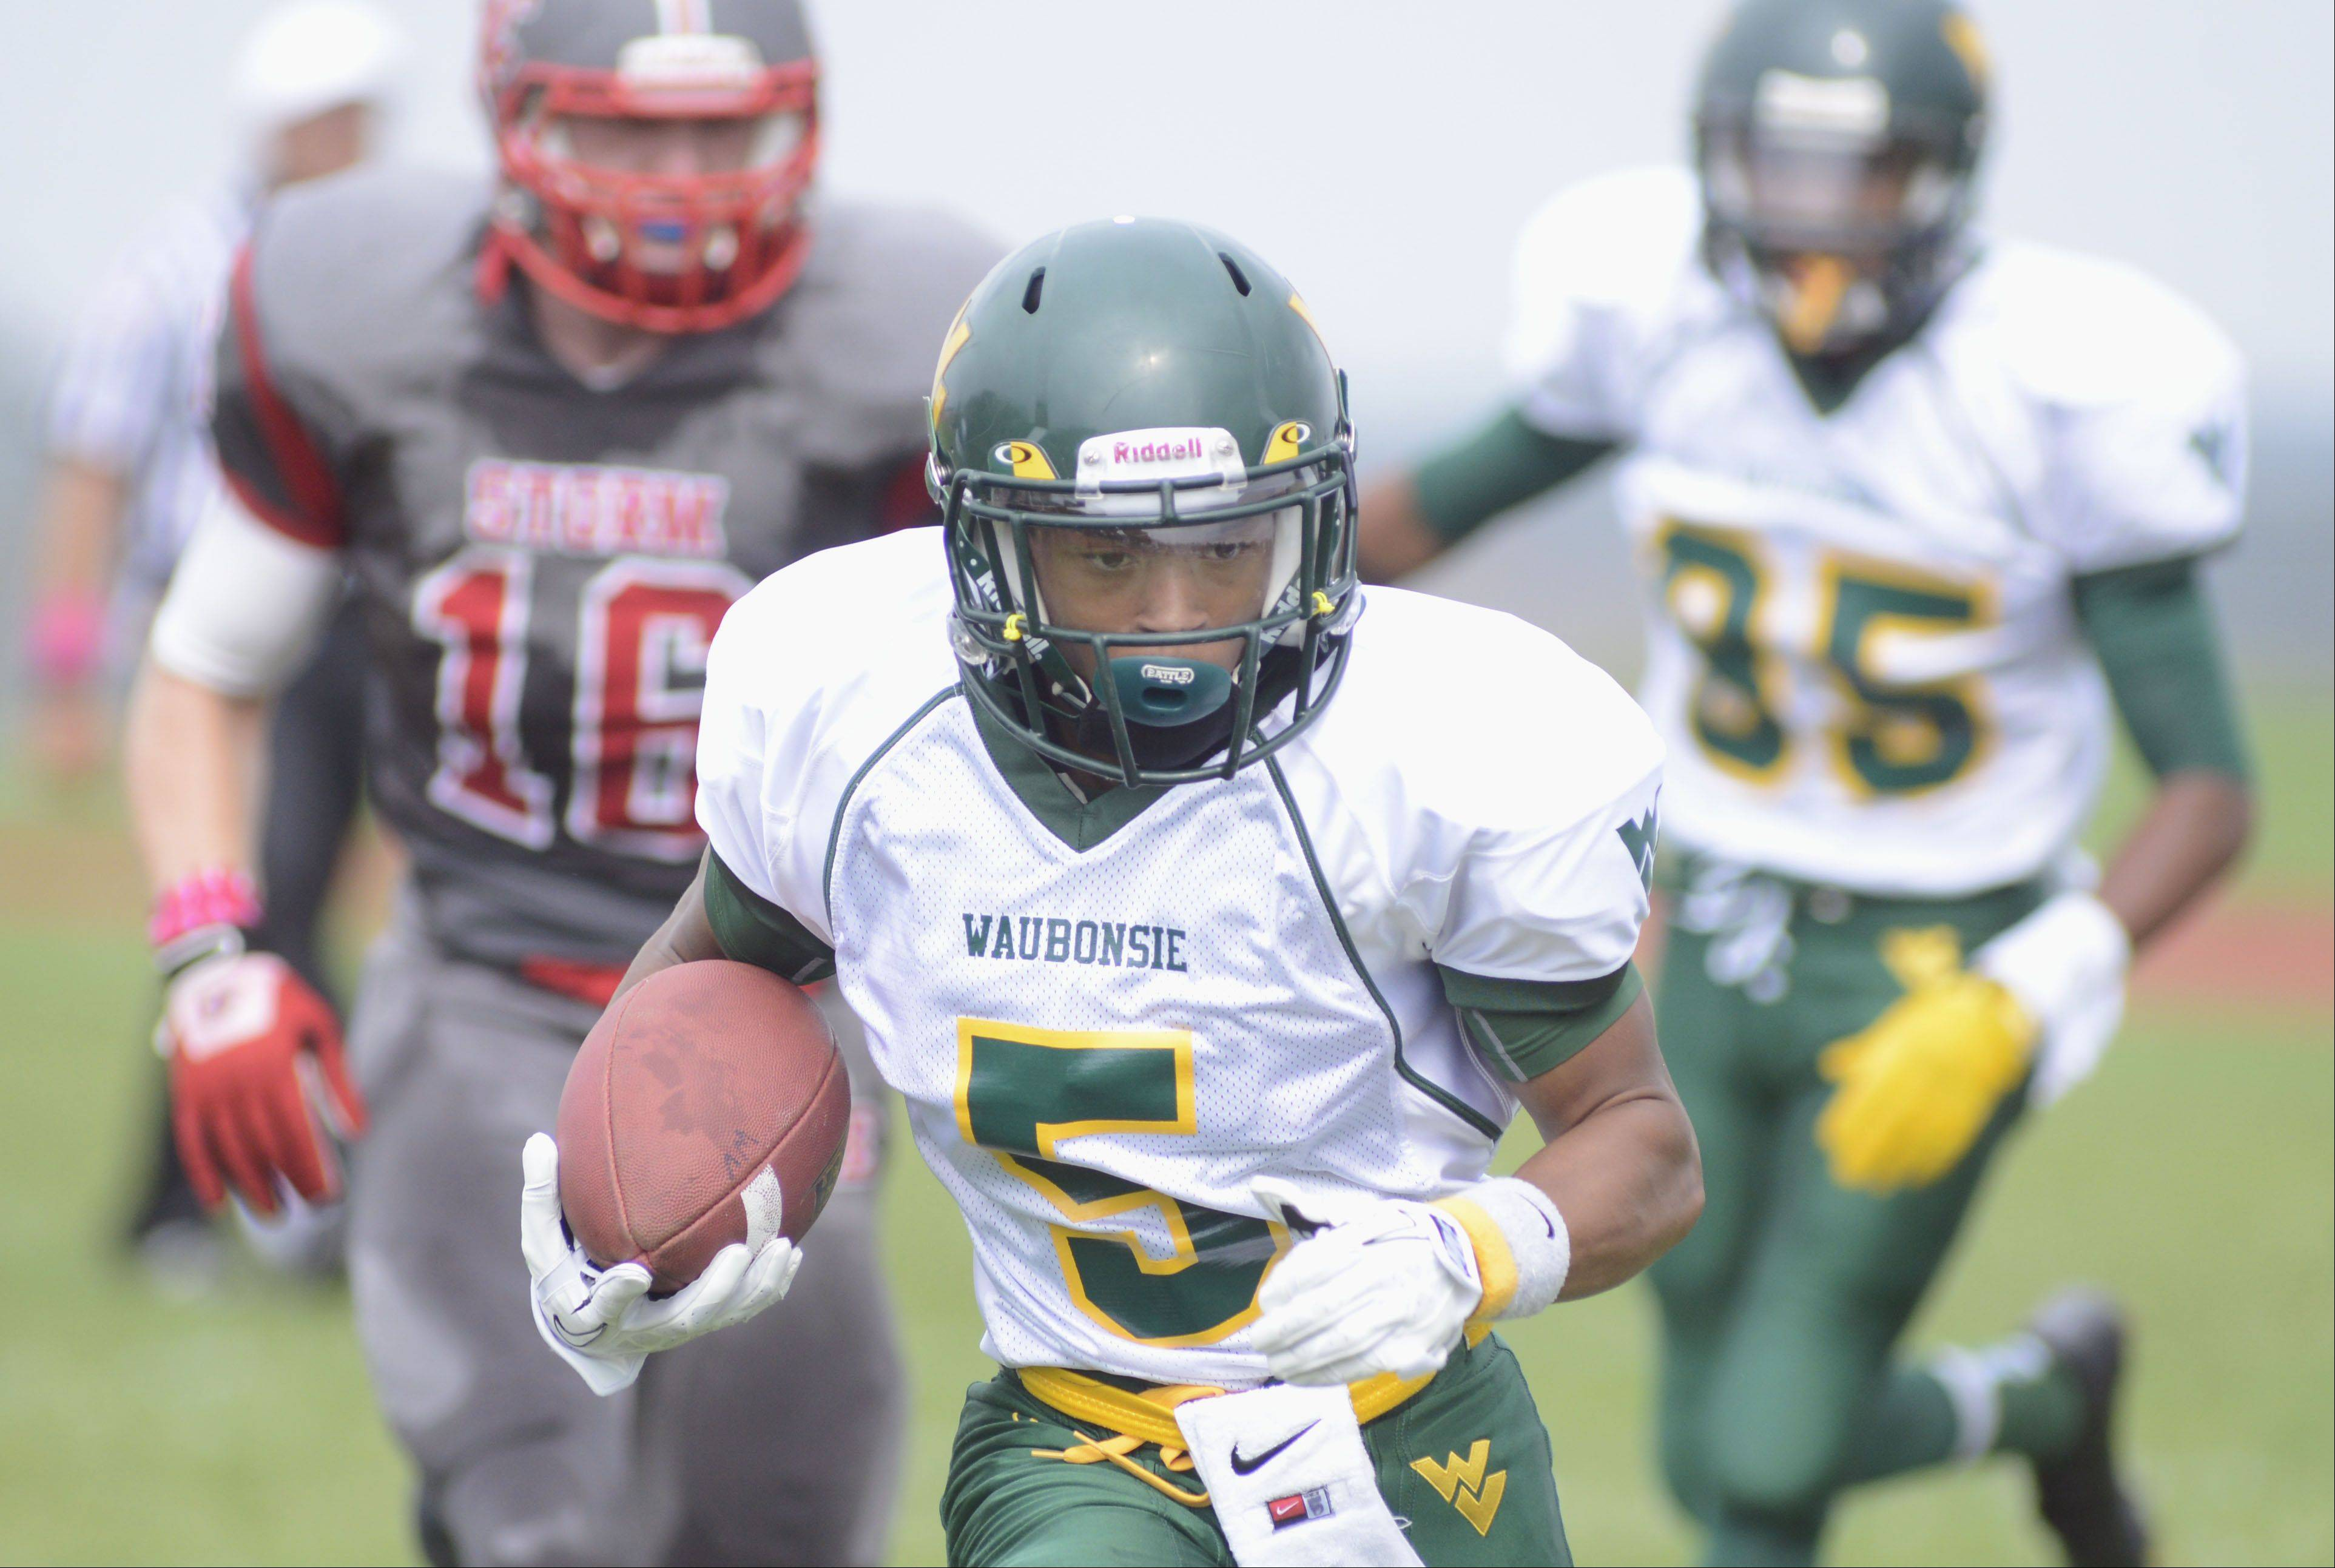 Waubonsie Valley's Devin Strickland makes his way downfield Saturday against South Elgin.